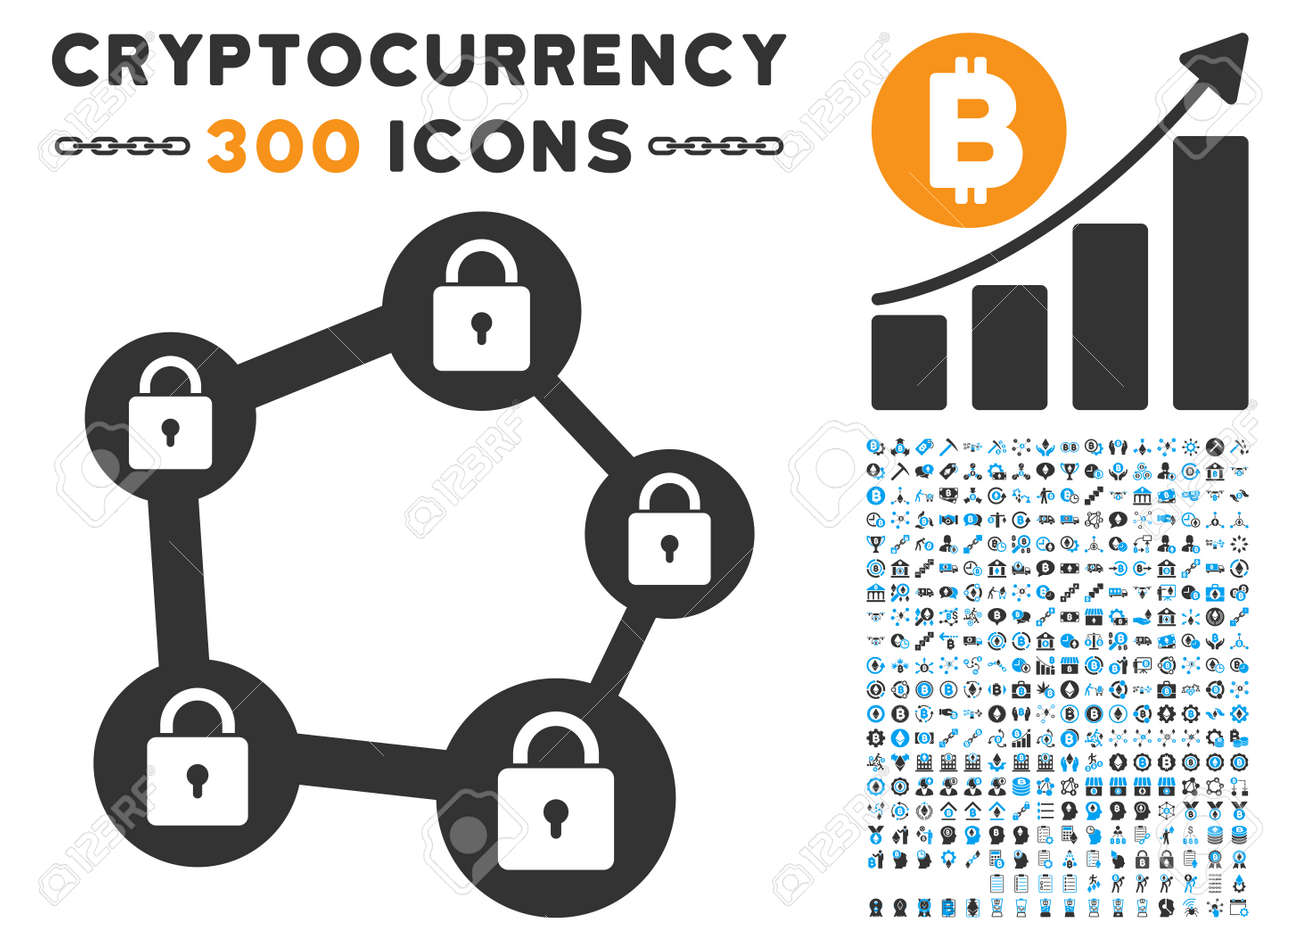 Blockchain Network Icon With 300 Bitcoin Ethereum Smart Contract Pictograms Vector